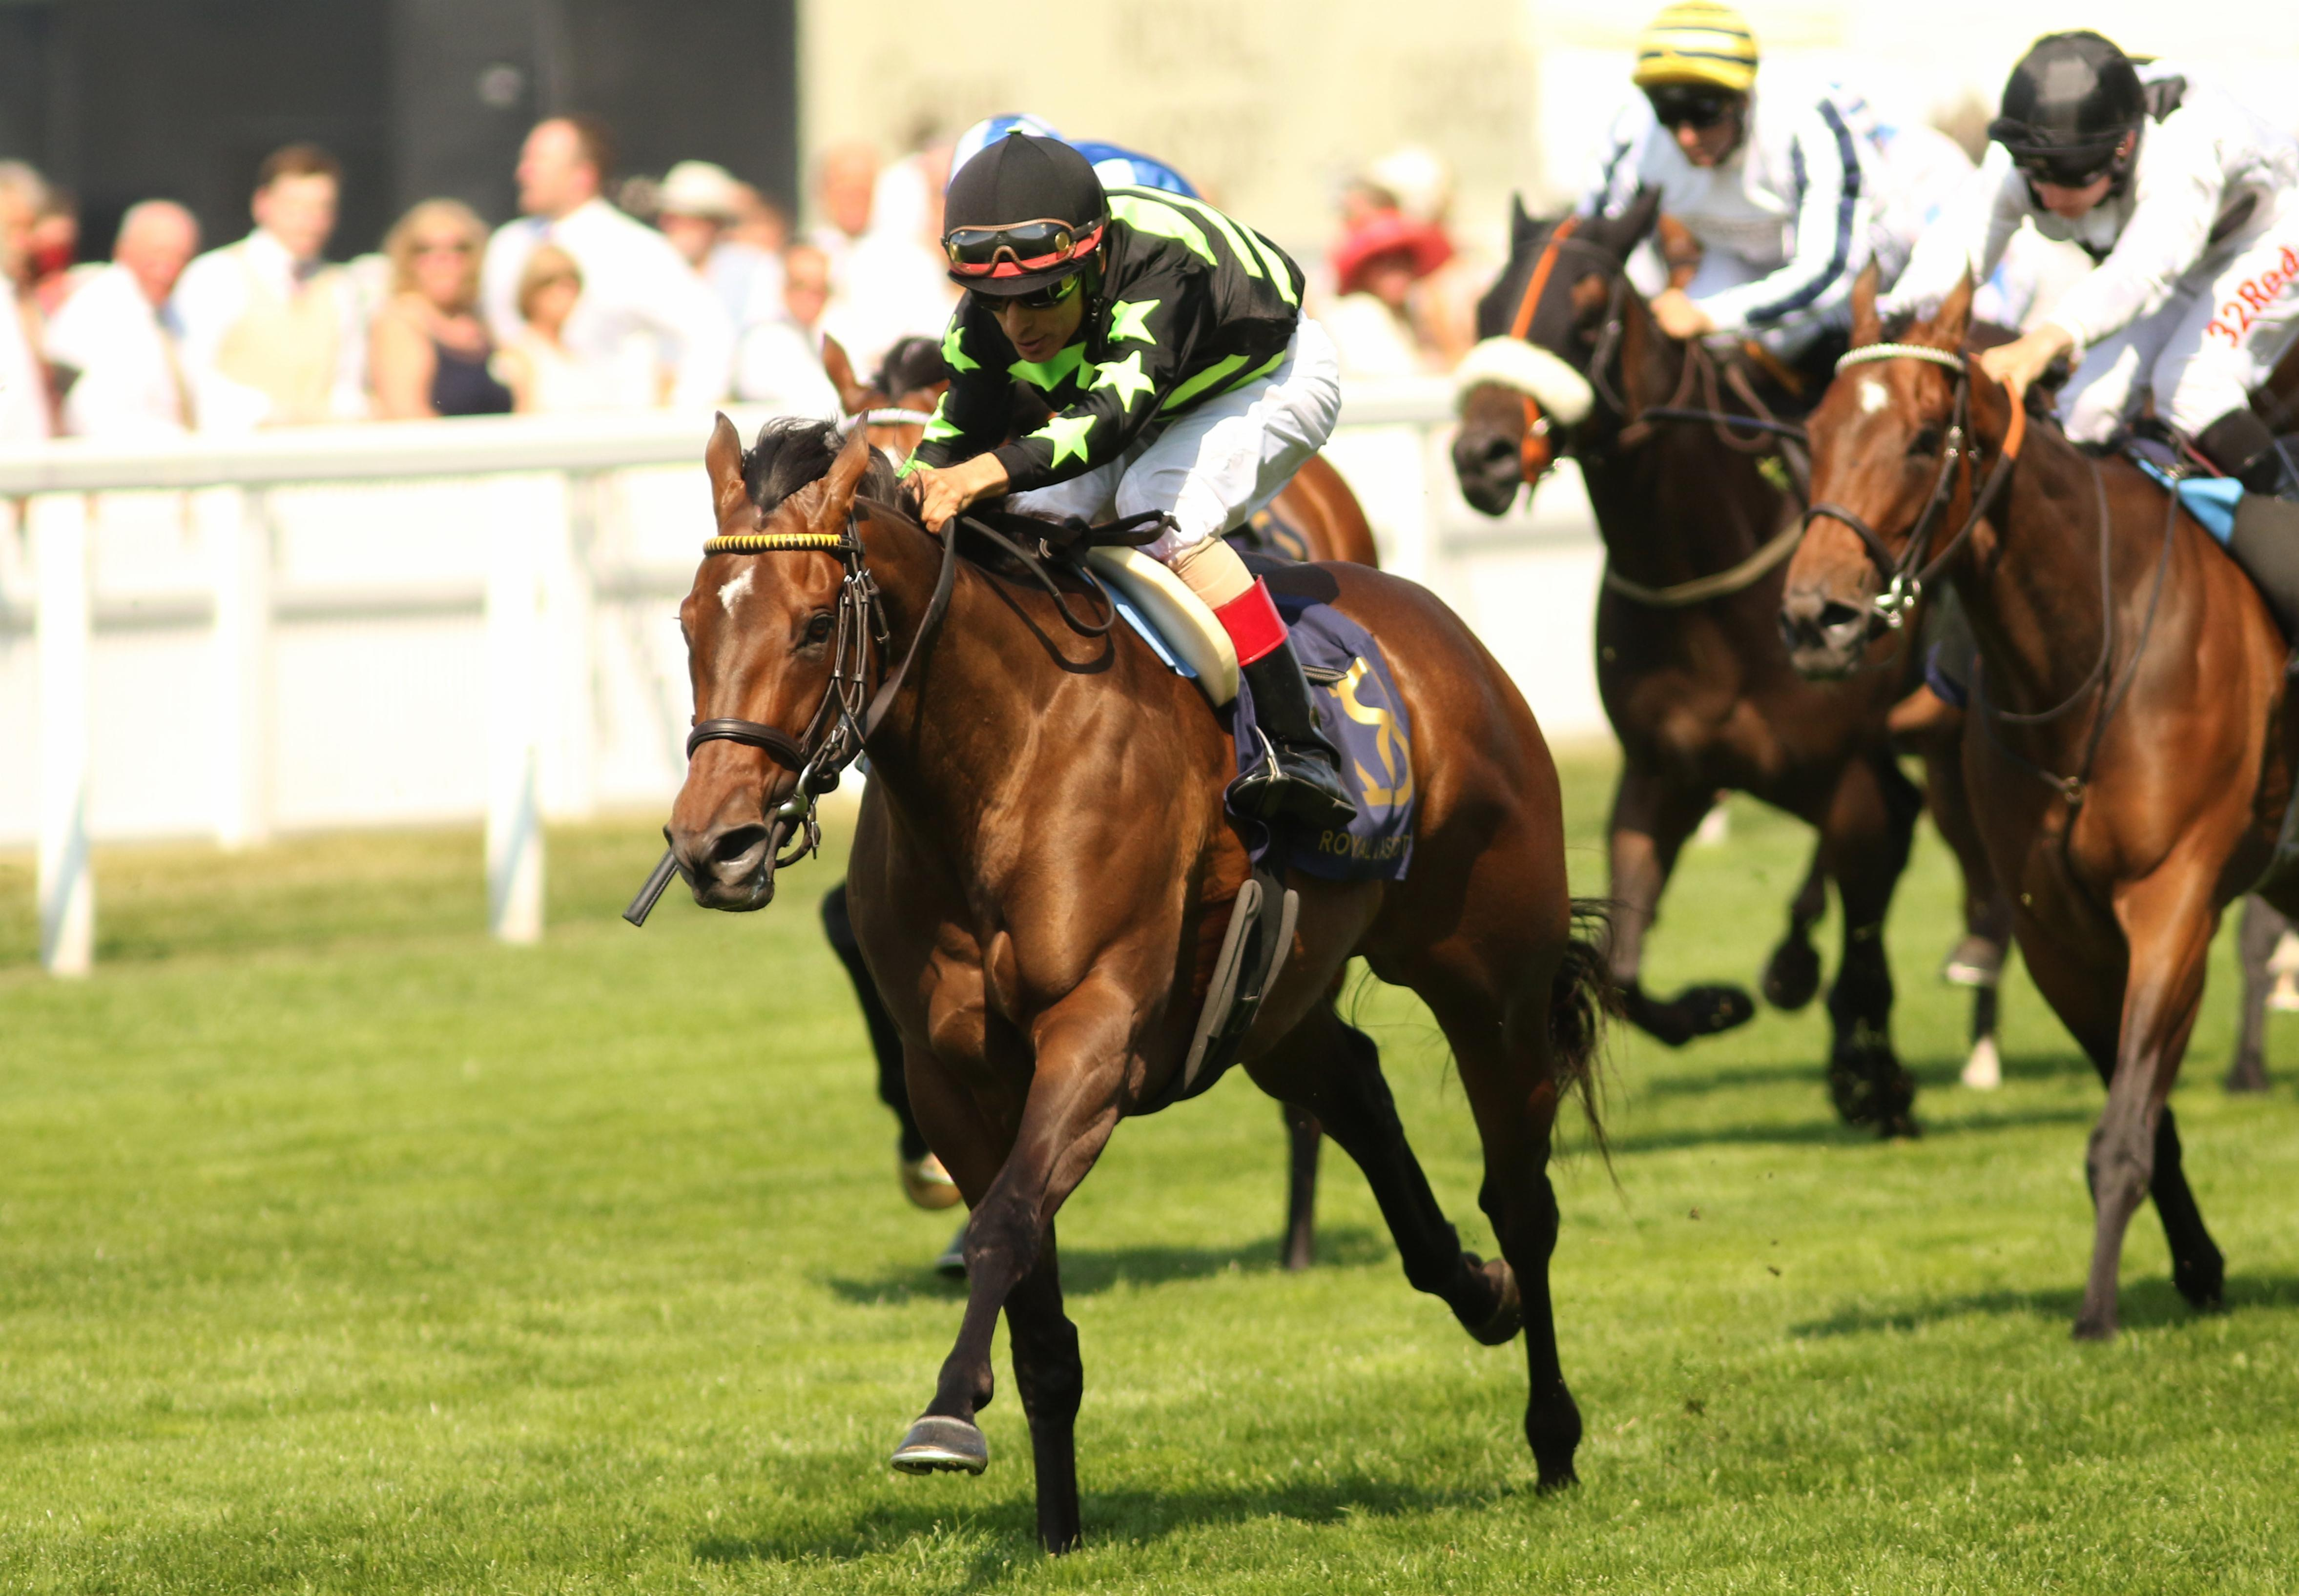 Lady Aurelia wins at Royal Ascot